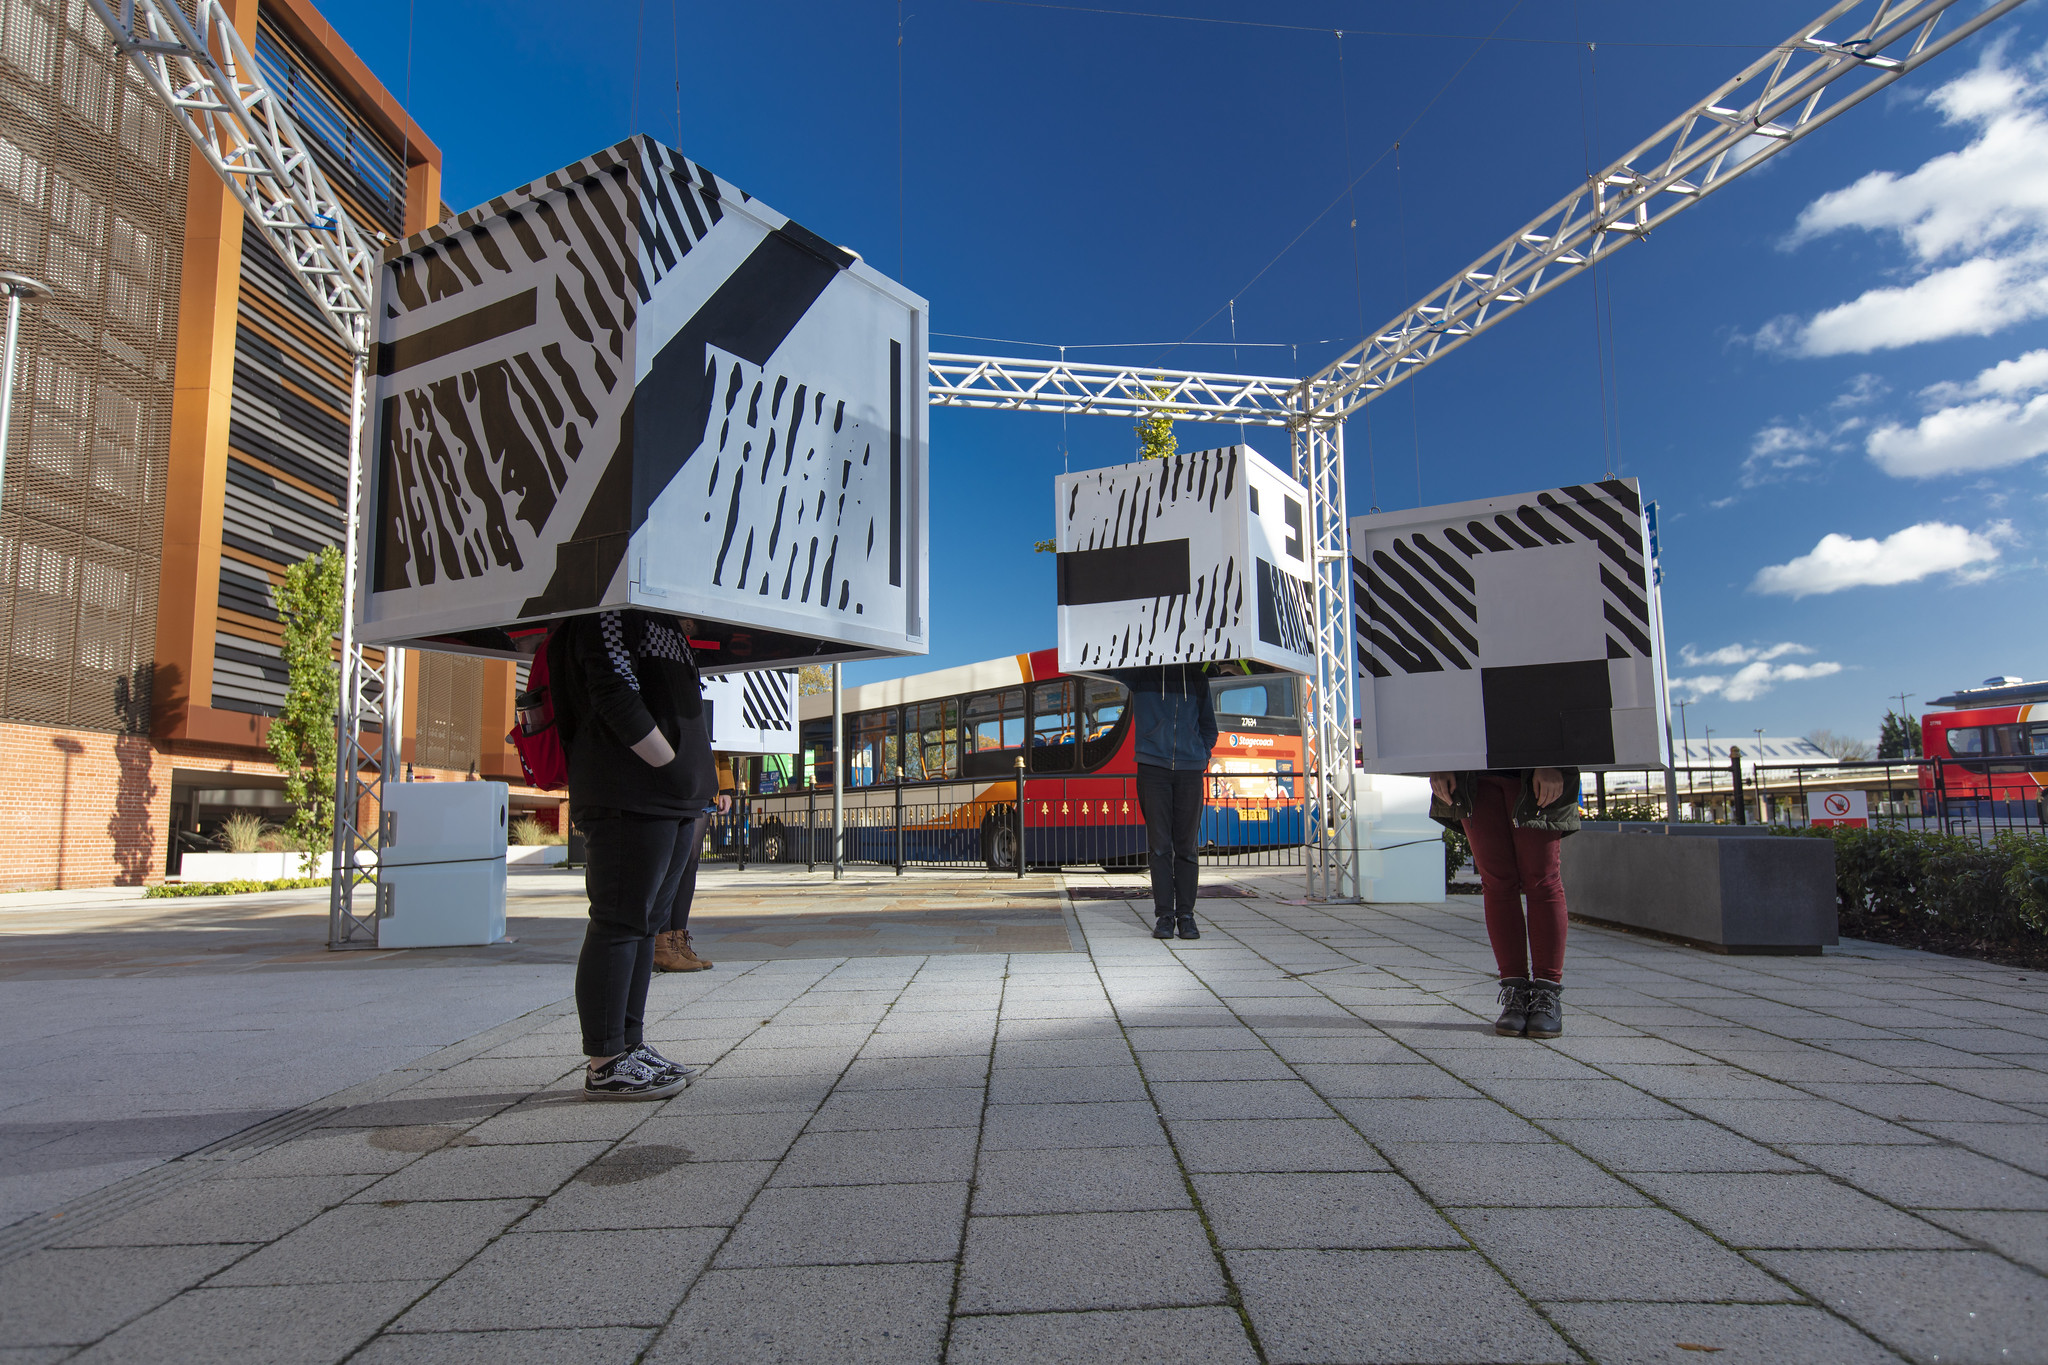 Urban artwork, people with boxes on heads